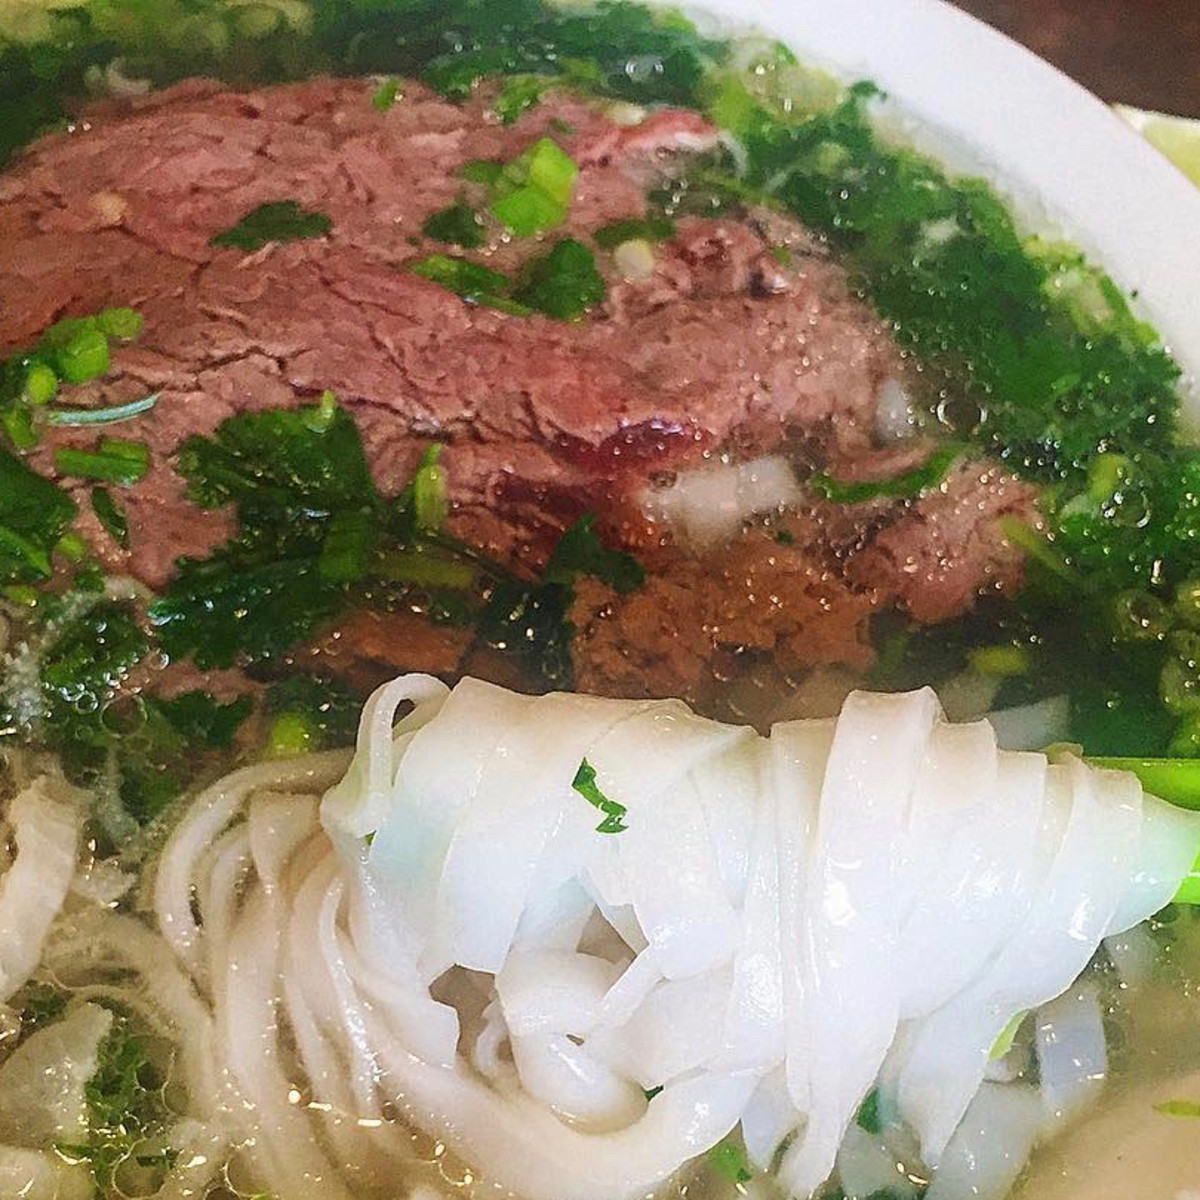 Pho Delivery New Kind Of Pho Restaurant Planned For Garden Oaks With Delivery